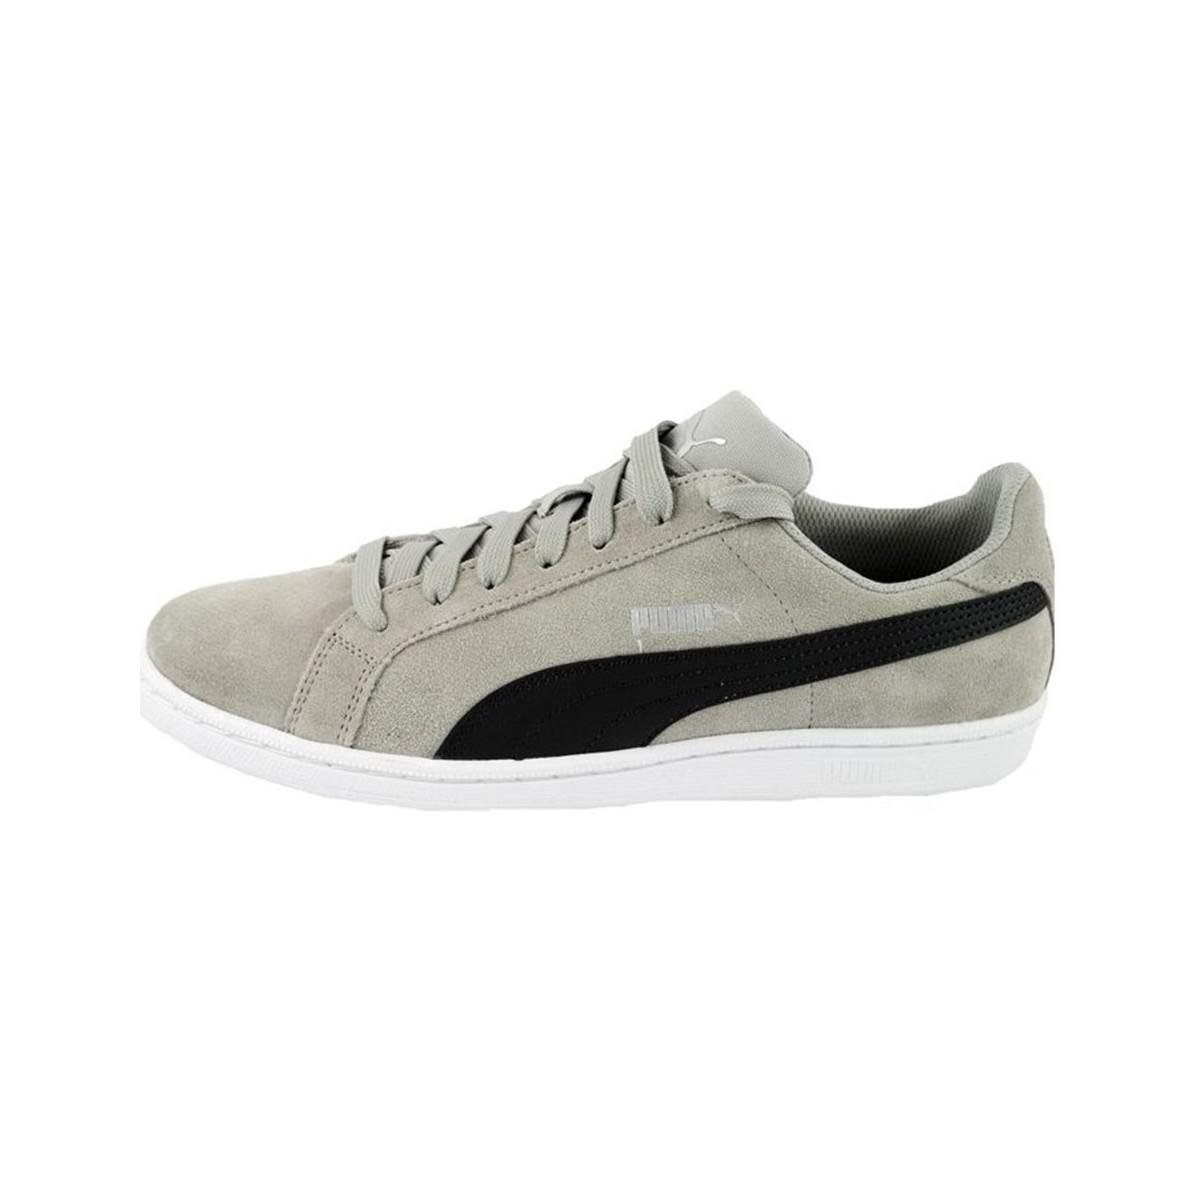 f9f88841b47 PUMA Smash Sd Men s Shoes (trainers) In Multicolour for Men - Lyst